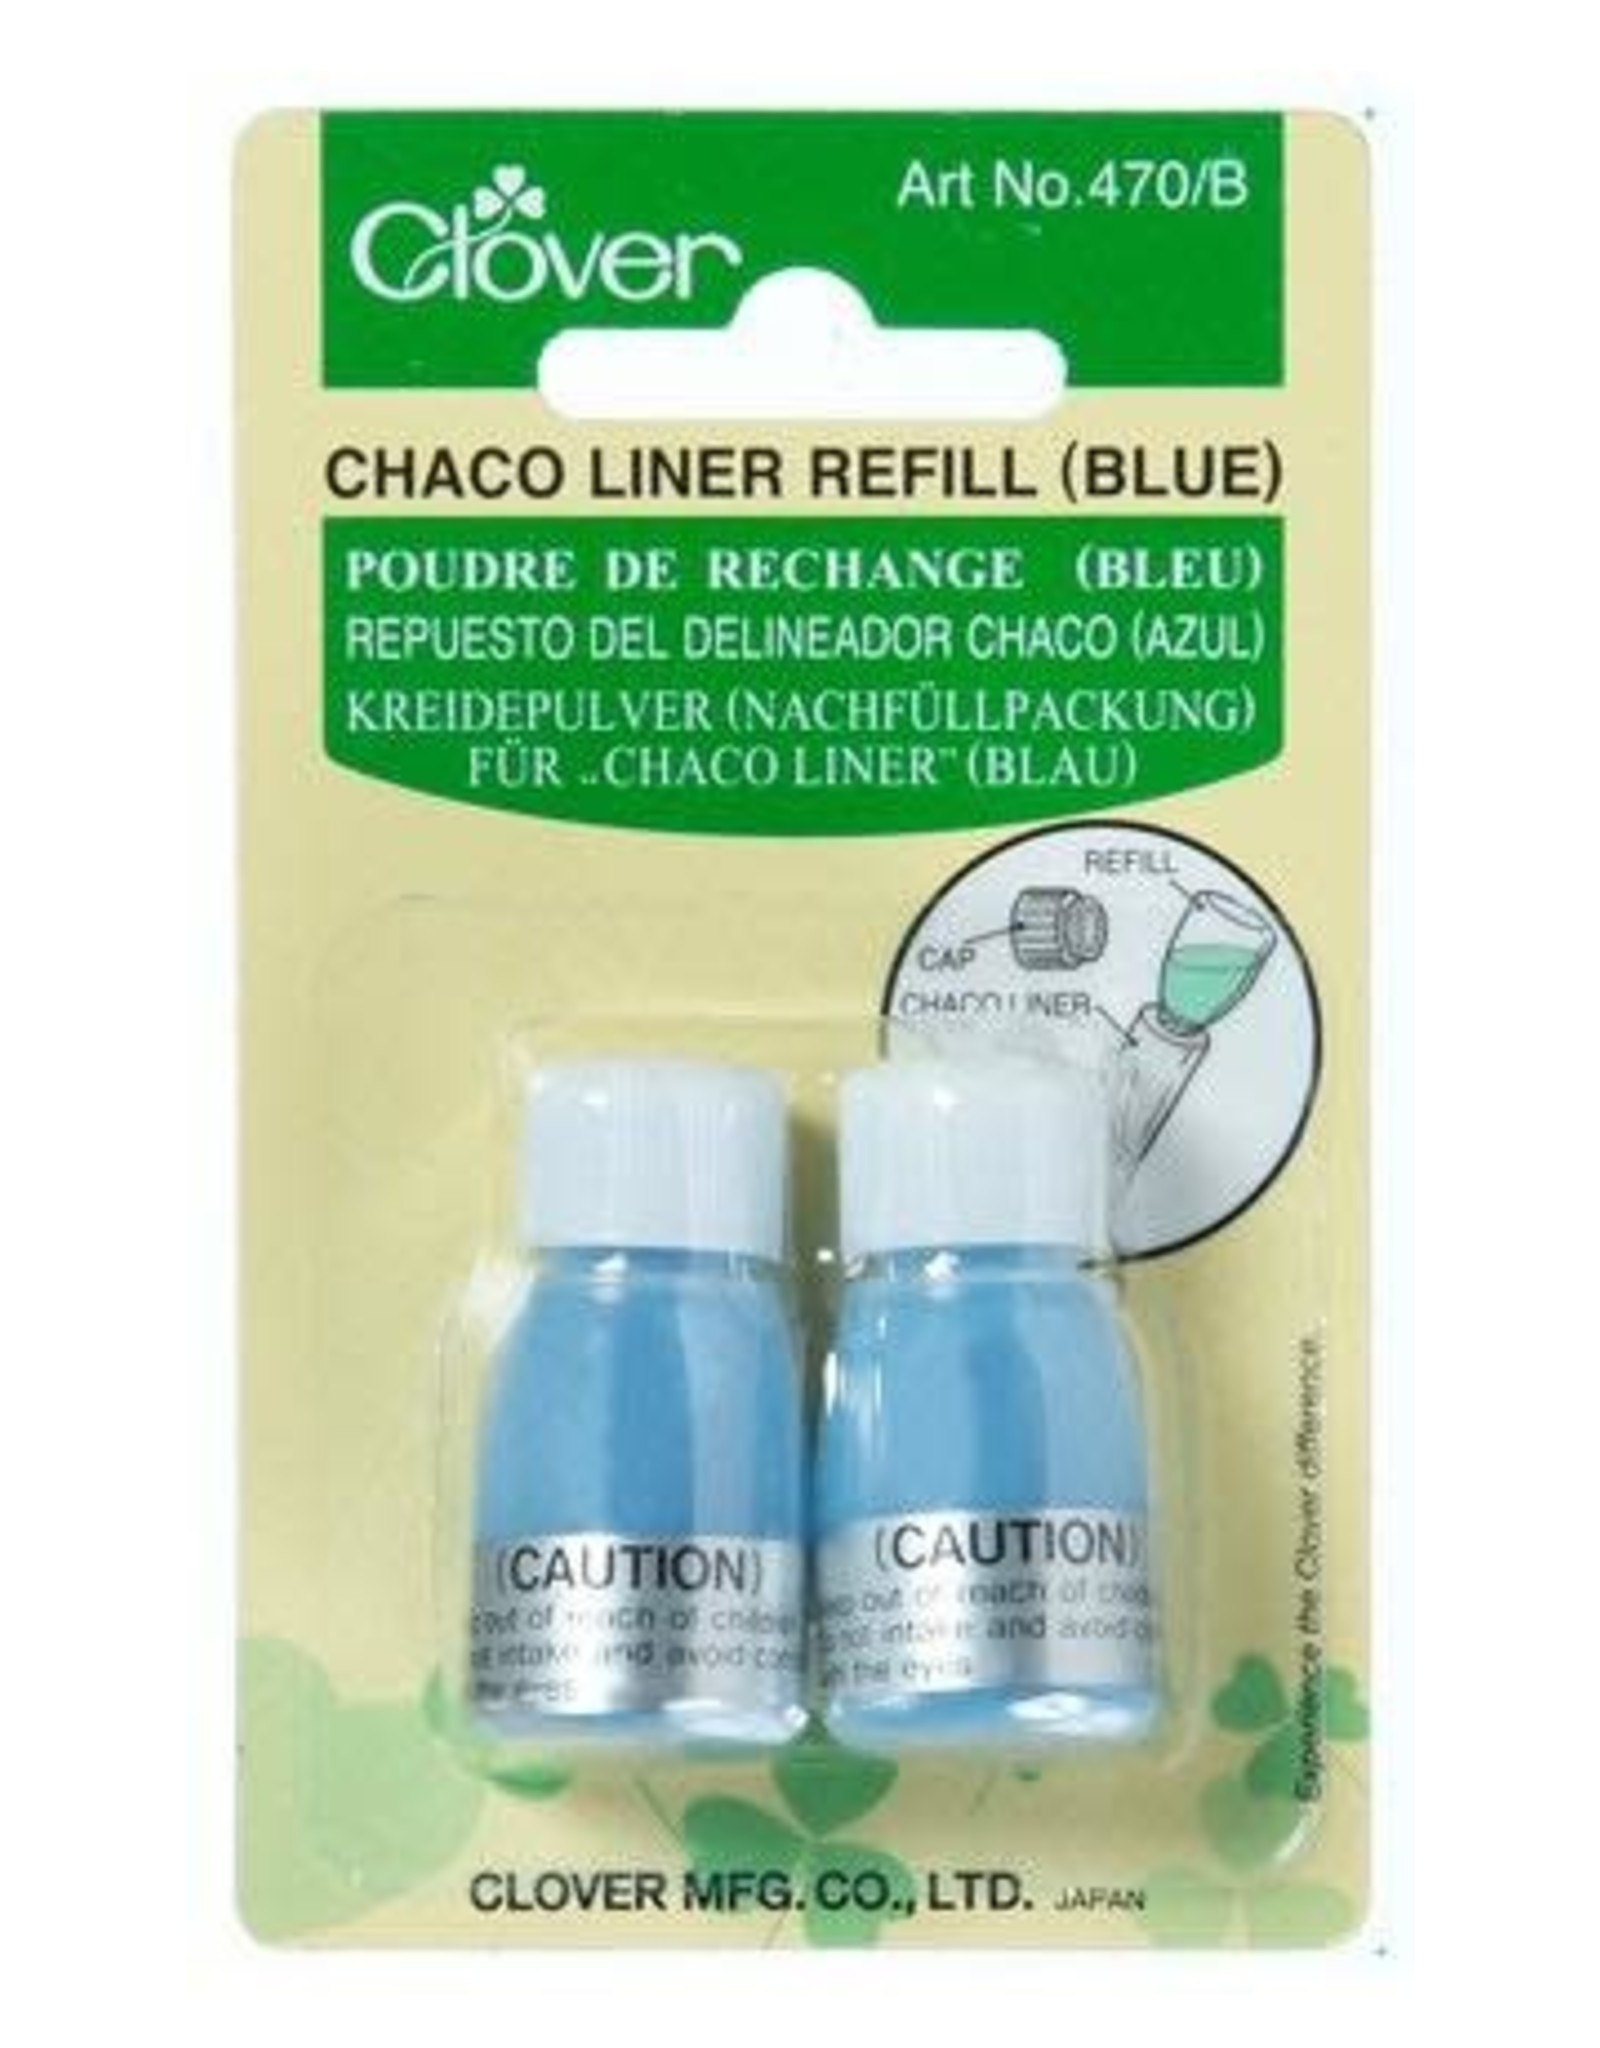 Clover Chaco Liner Refill - blue chalk